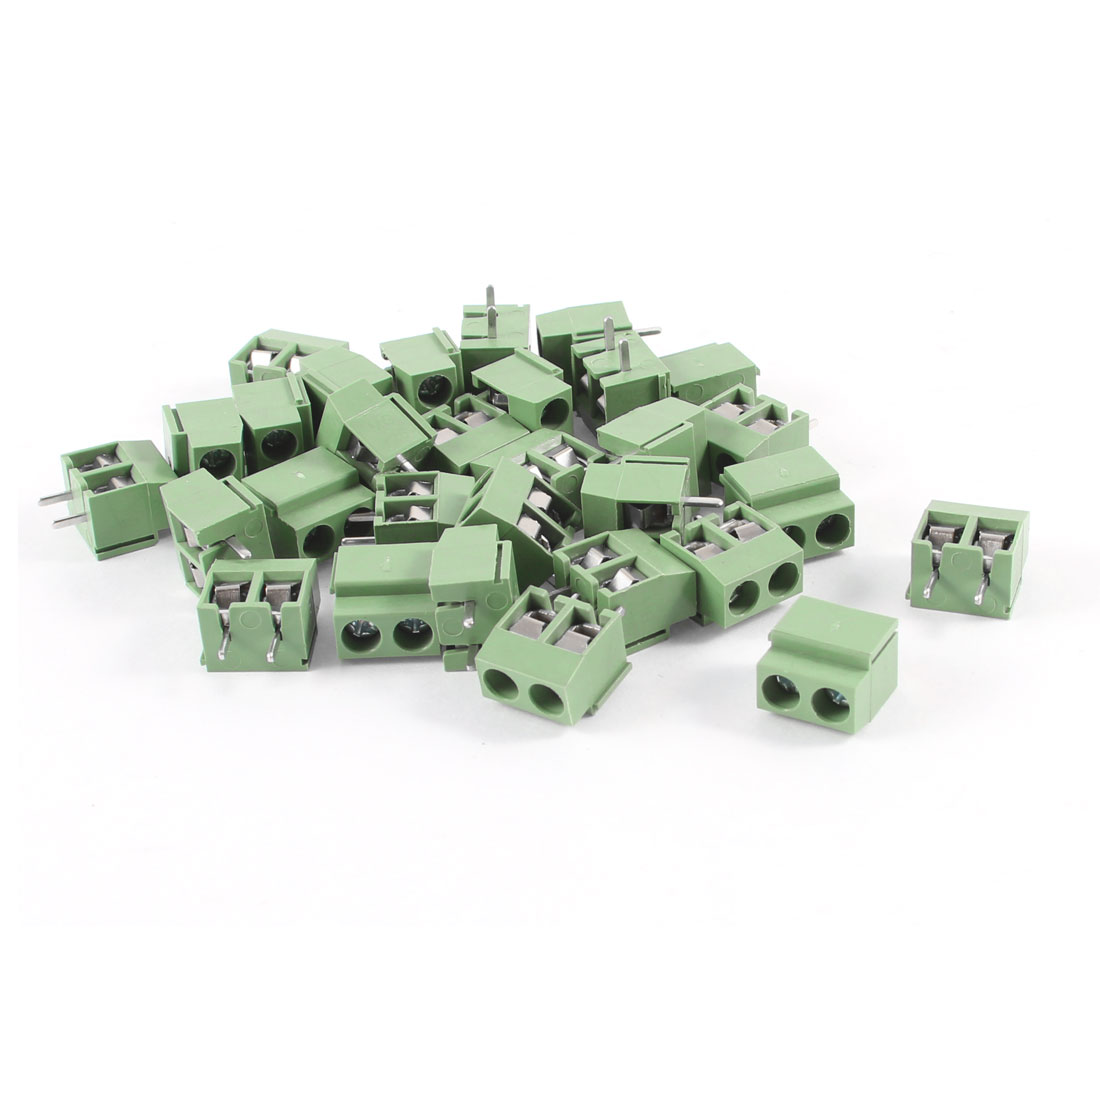 30Pcs 2 Pole 5mm Pitch PCB Mount Screw Terminal Block 8A 250V